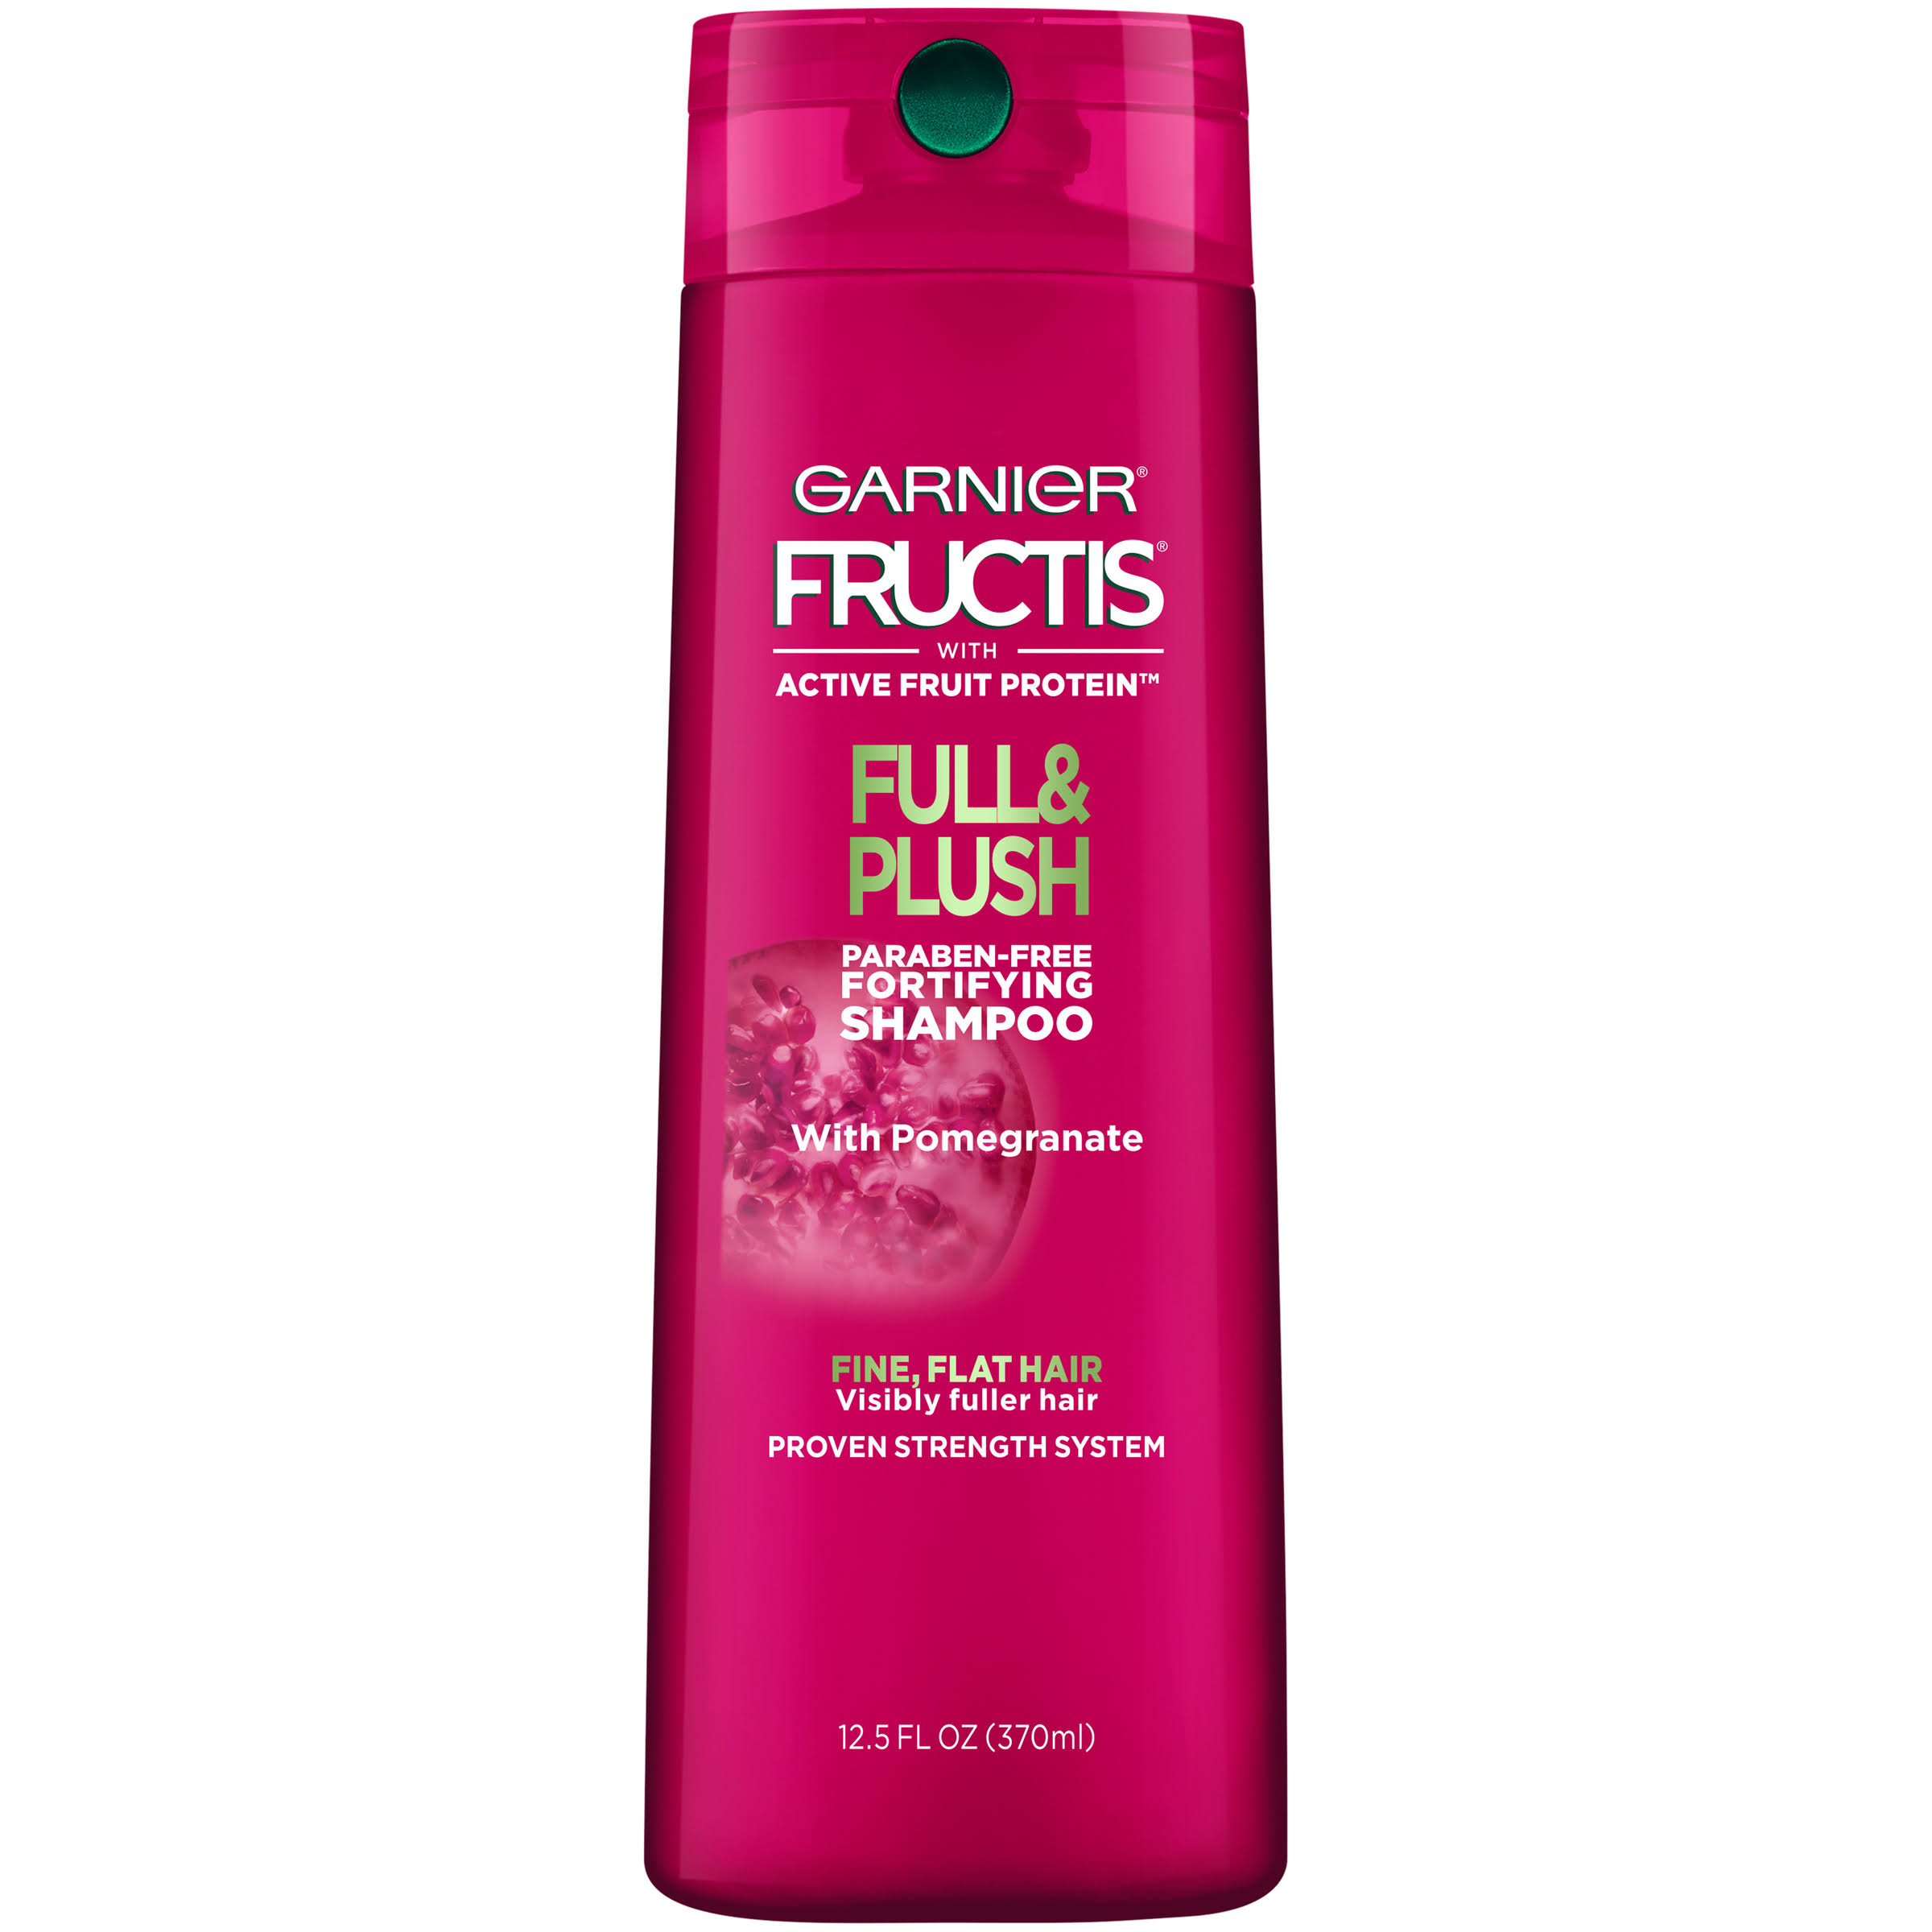 Garnier Hair Care Fructis Full and Plush Shampoo - 370ml